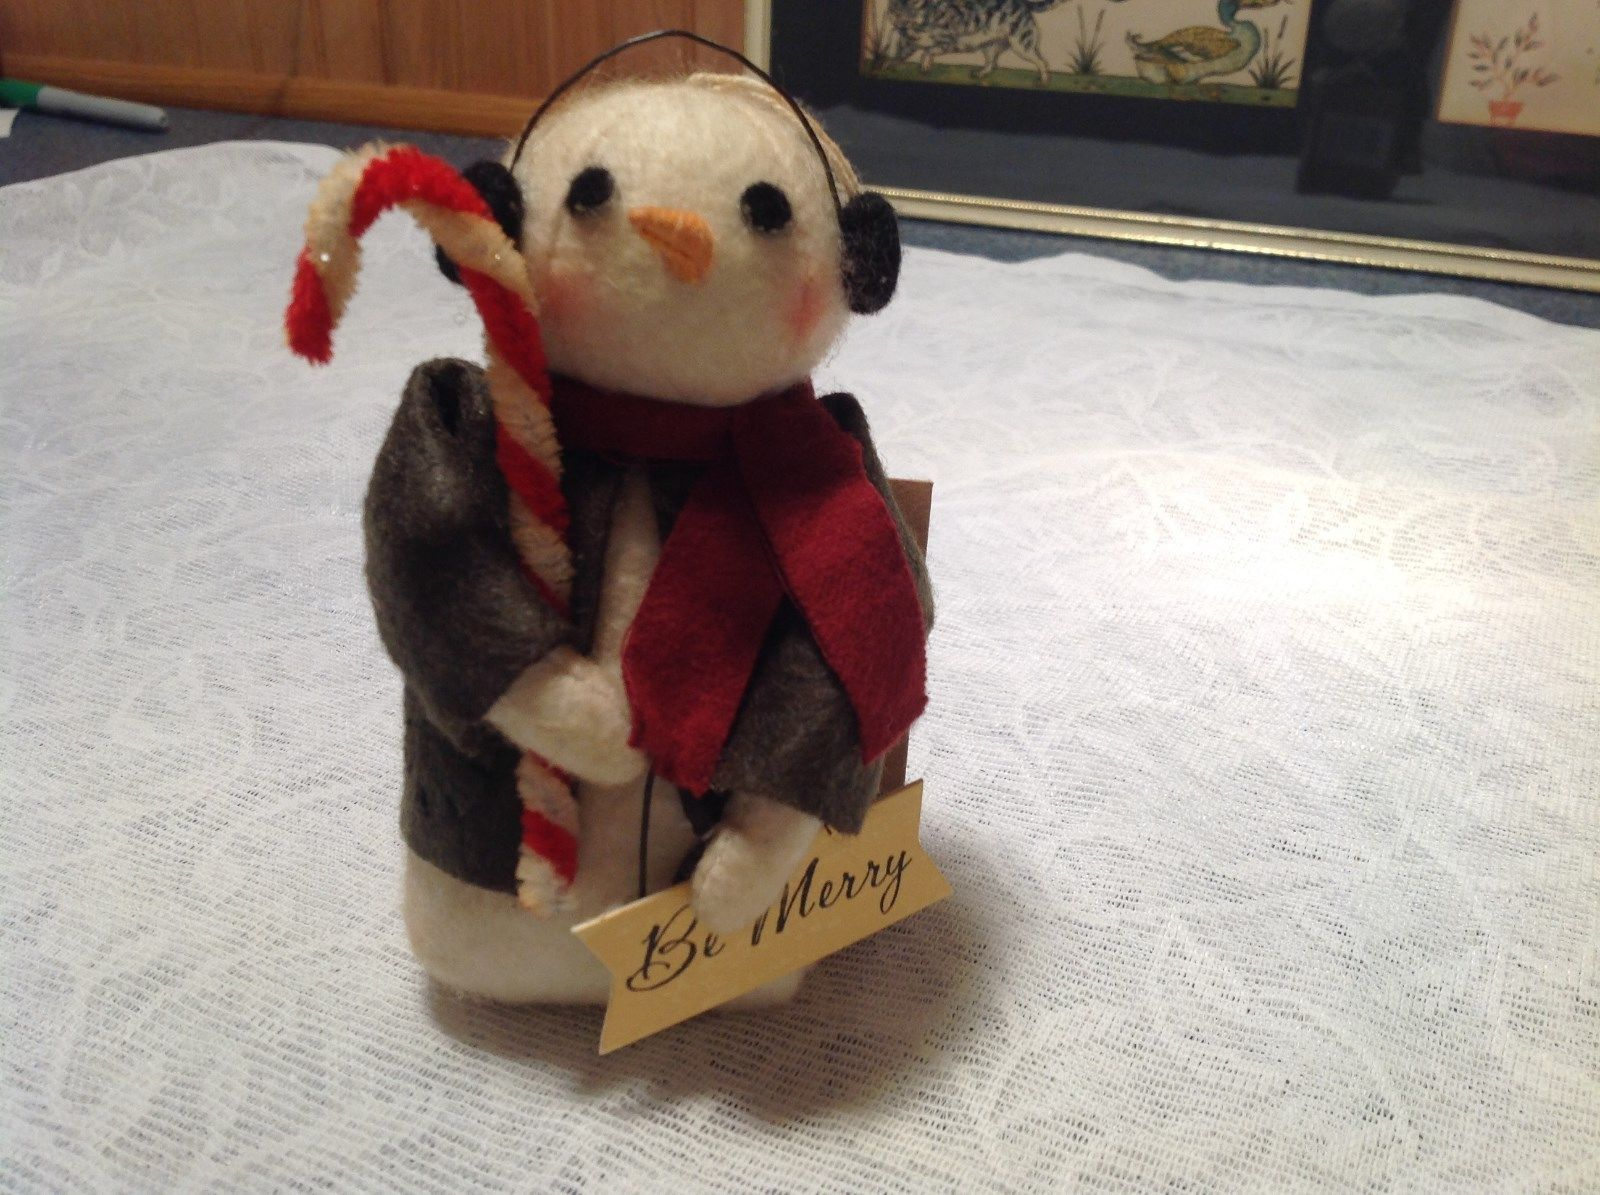 Be Merry Christmas Snowman Ornament Holding Candy Cane